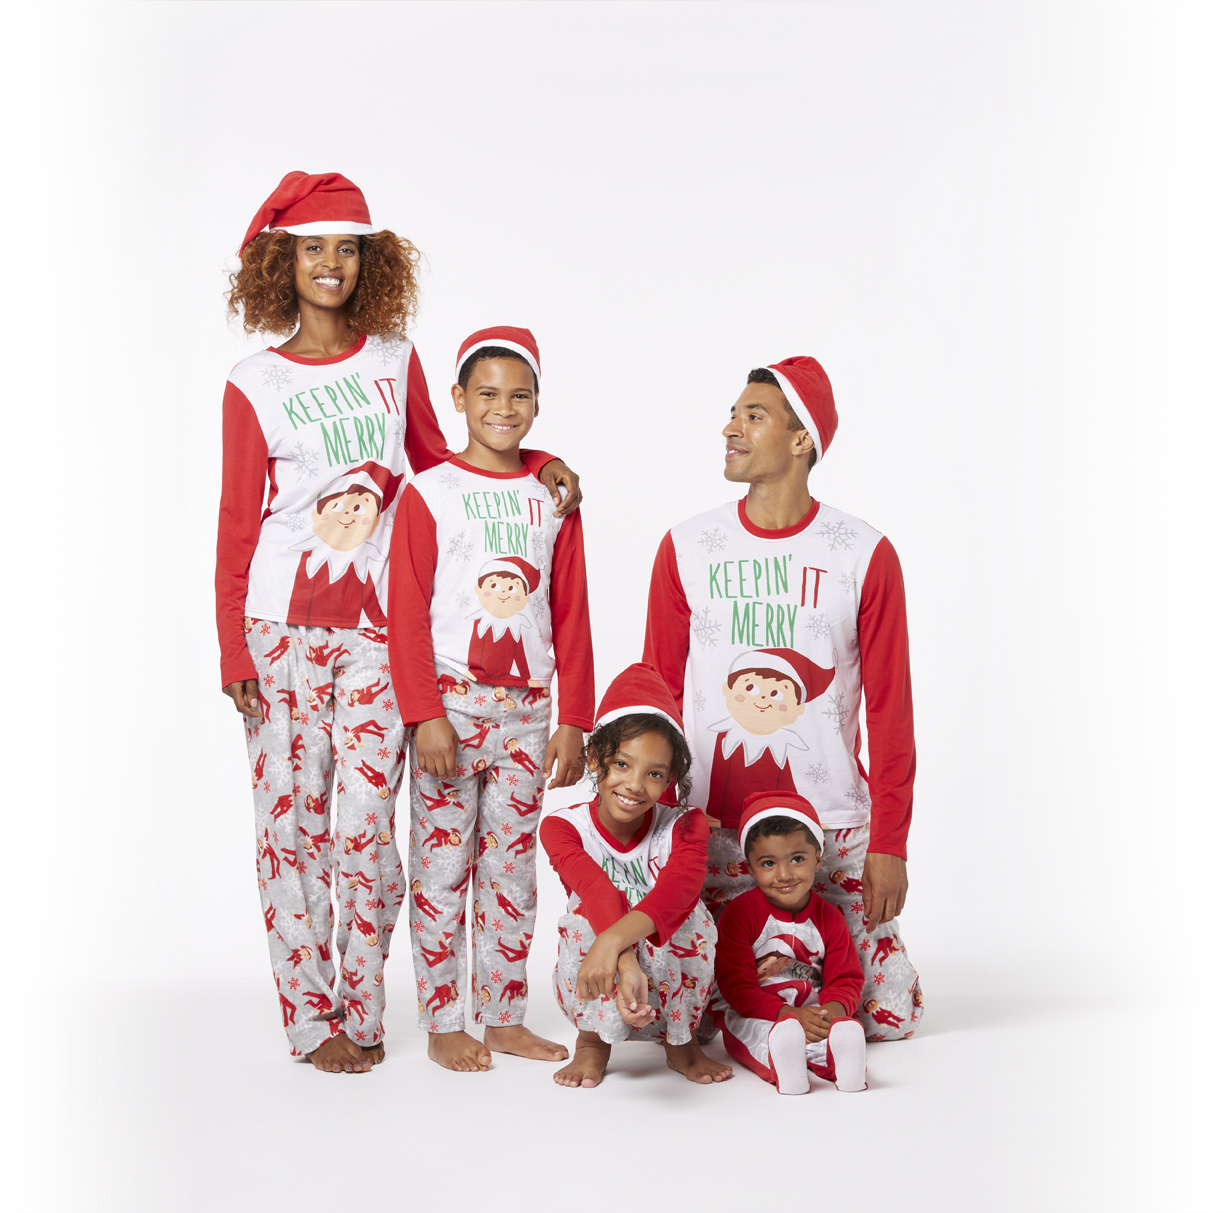 how fun would it be to deck the whole family out in matching pajamas you can get these 2 styles shown at walmart and target - Target Christmas Pjs